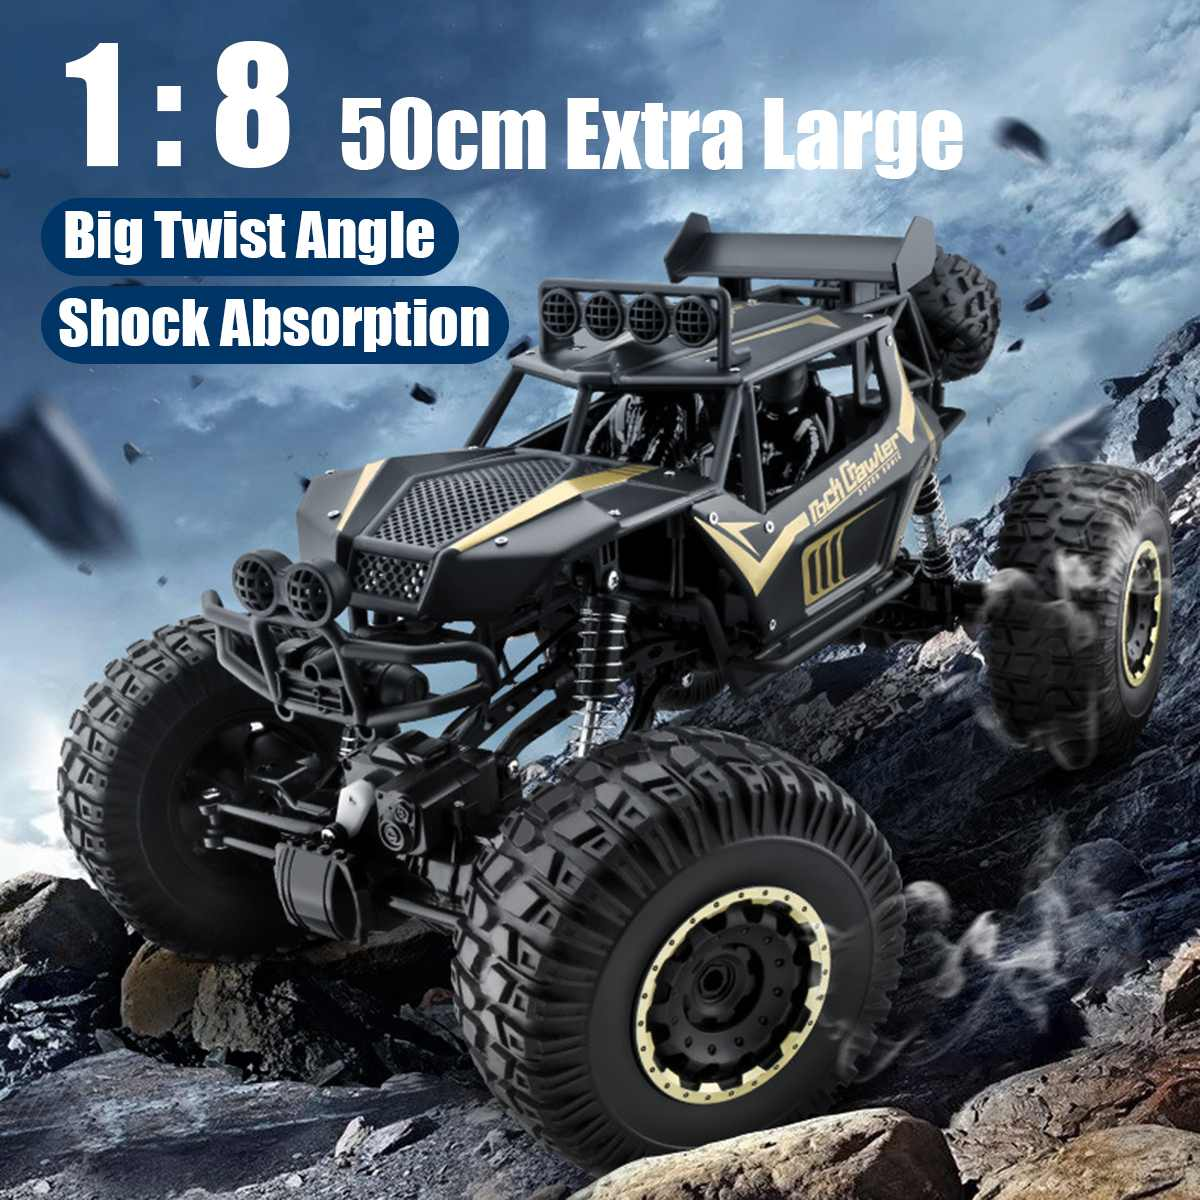 1:8 50cm RC Car 2.4G Radio Control 4WD Off-road Electric Vehicle Monster Buggy Remote Control Car Gift Toys For Children Boys 1